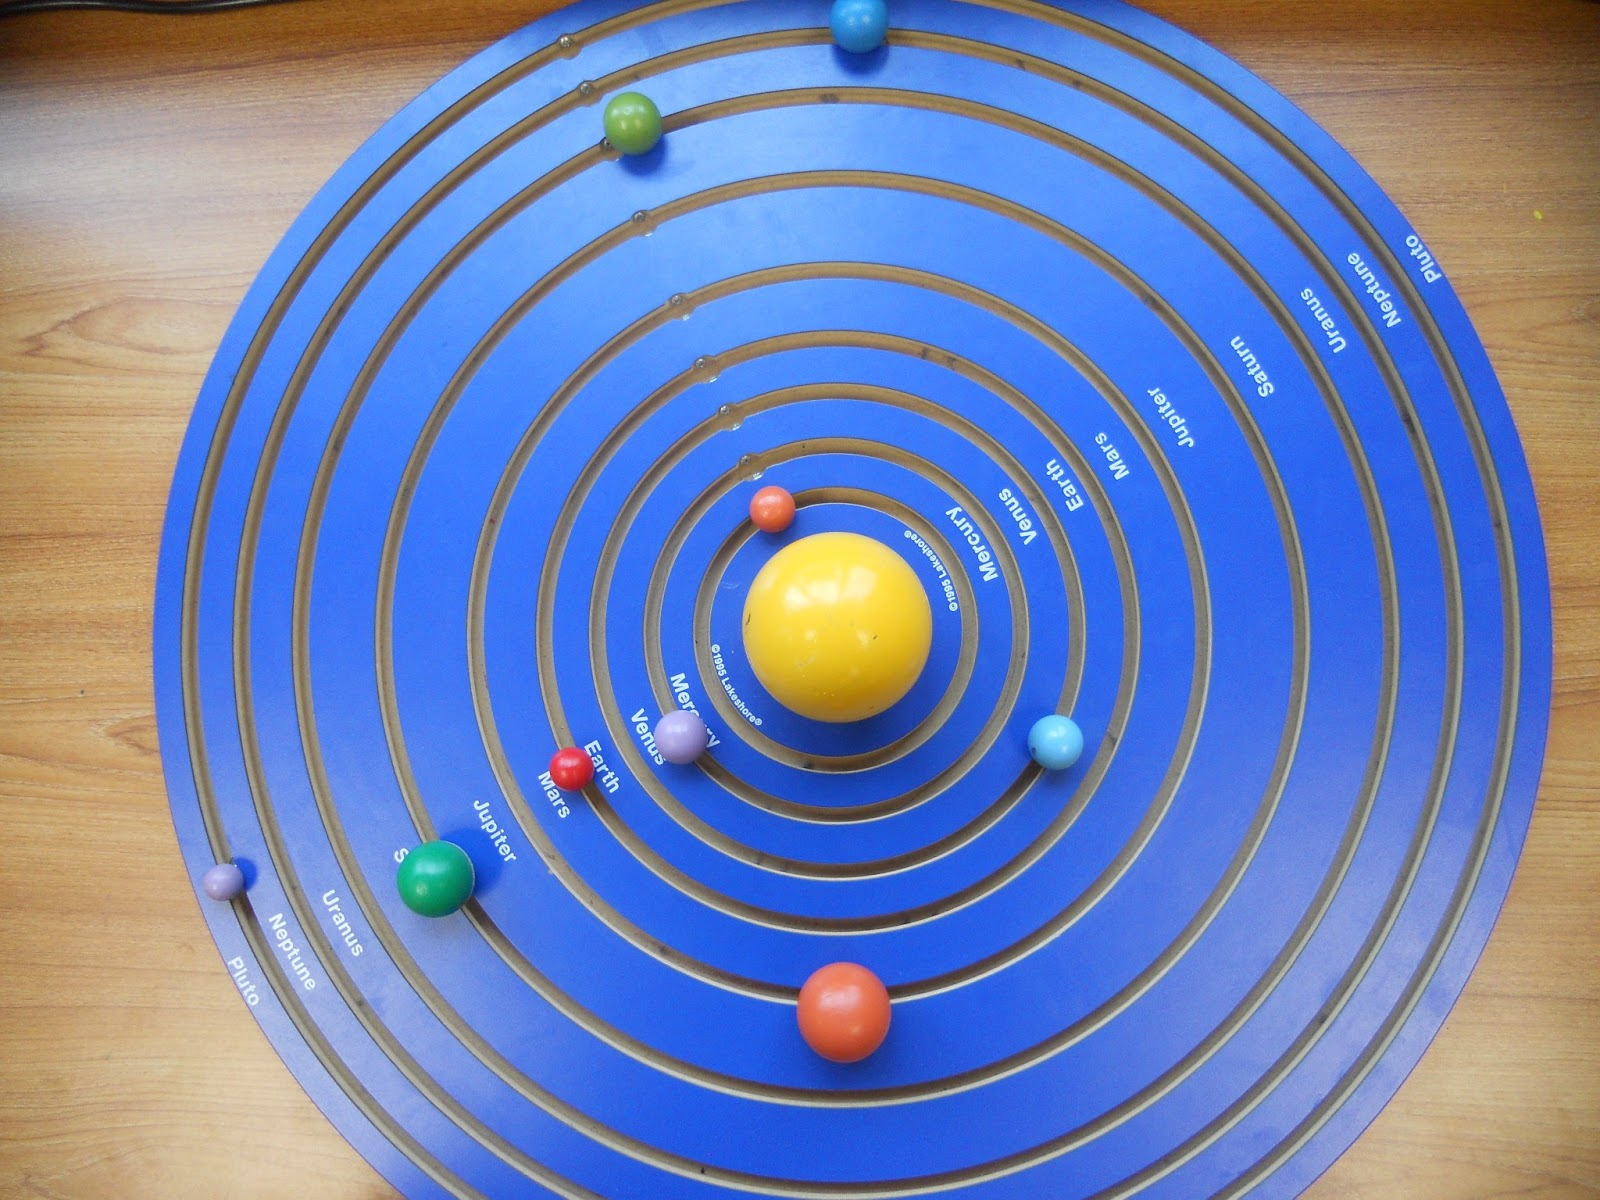 solar system lesson model of - photo #36